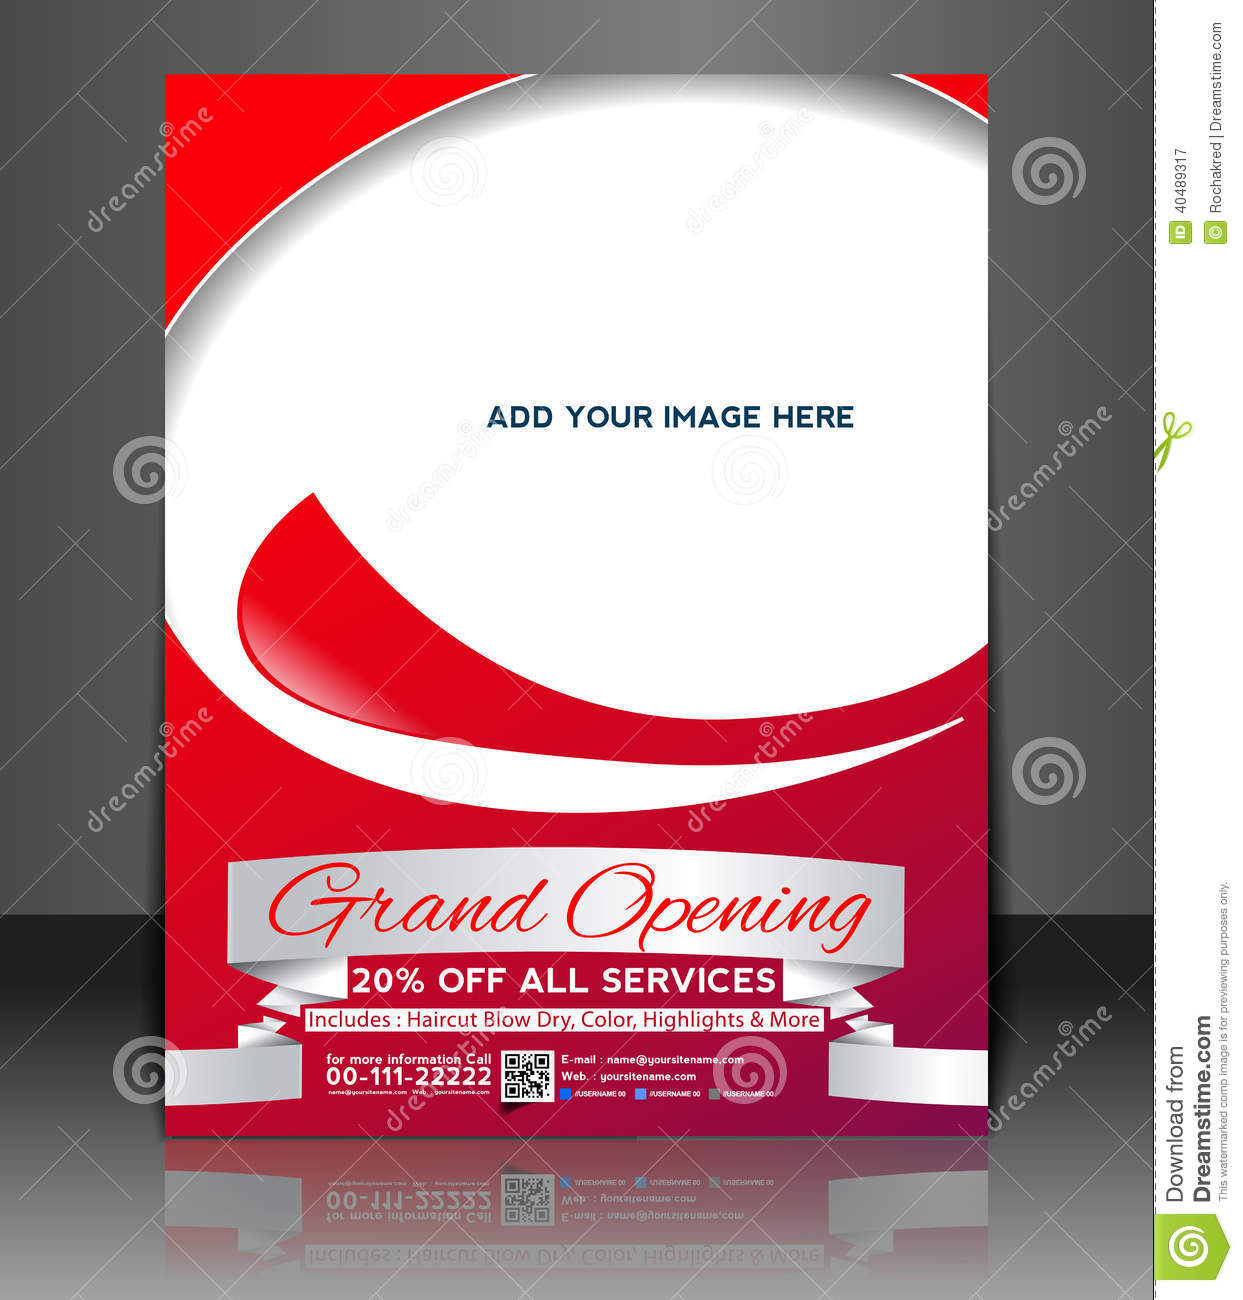 grand opening flyer design stock vector illustration of idea 40489317